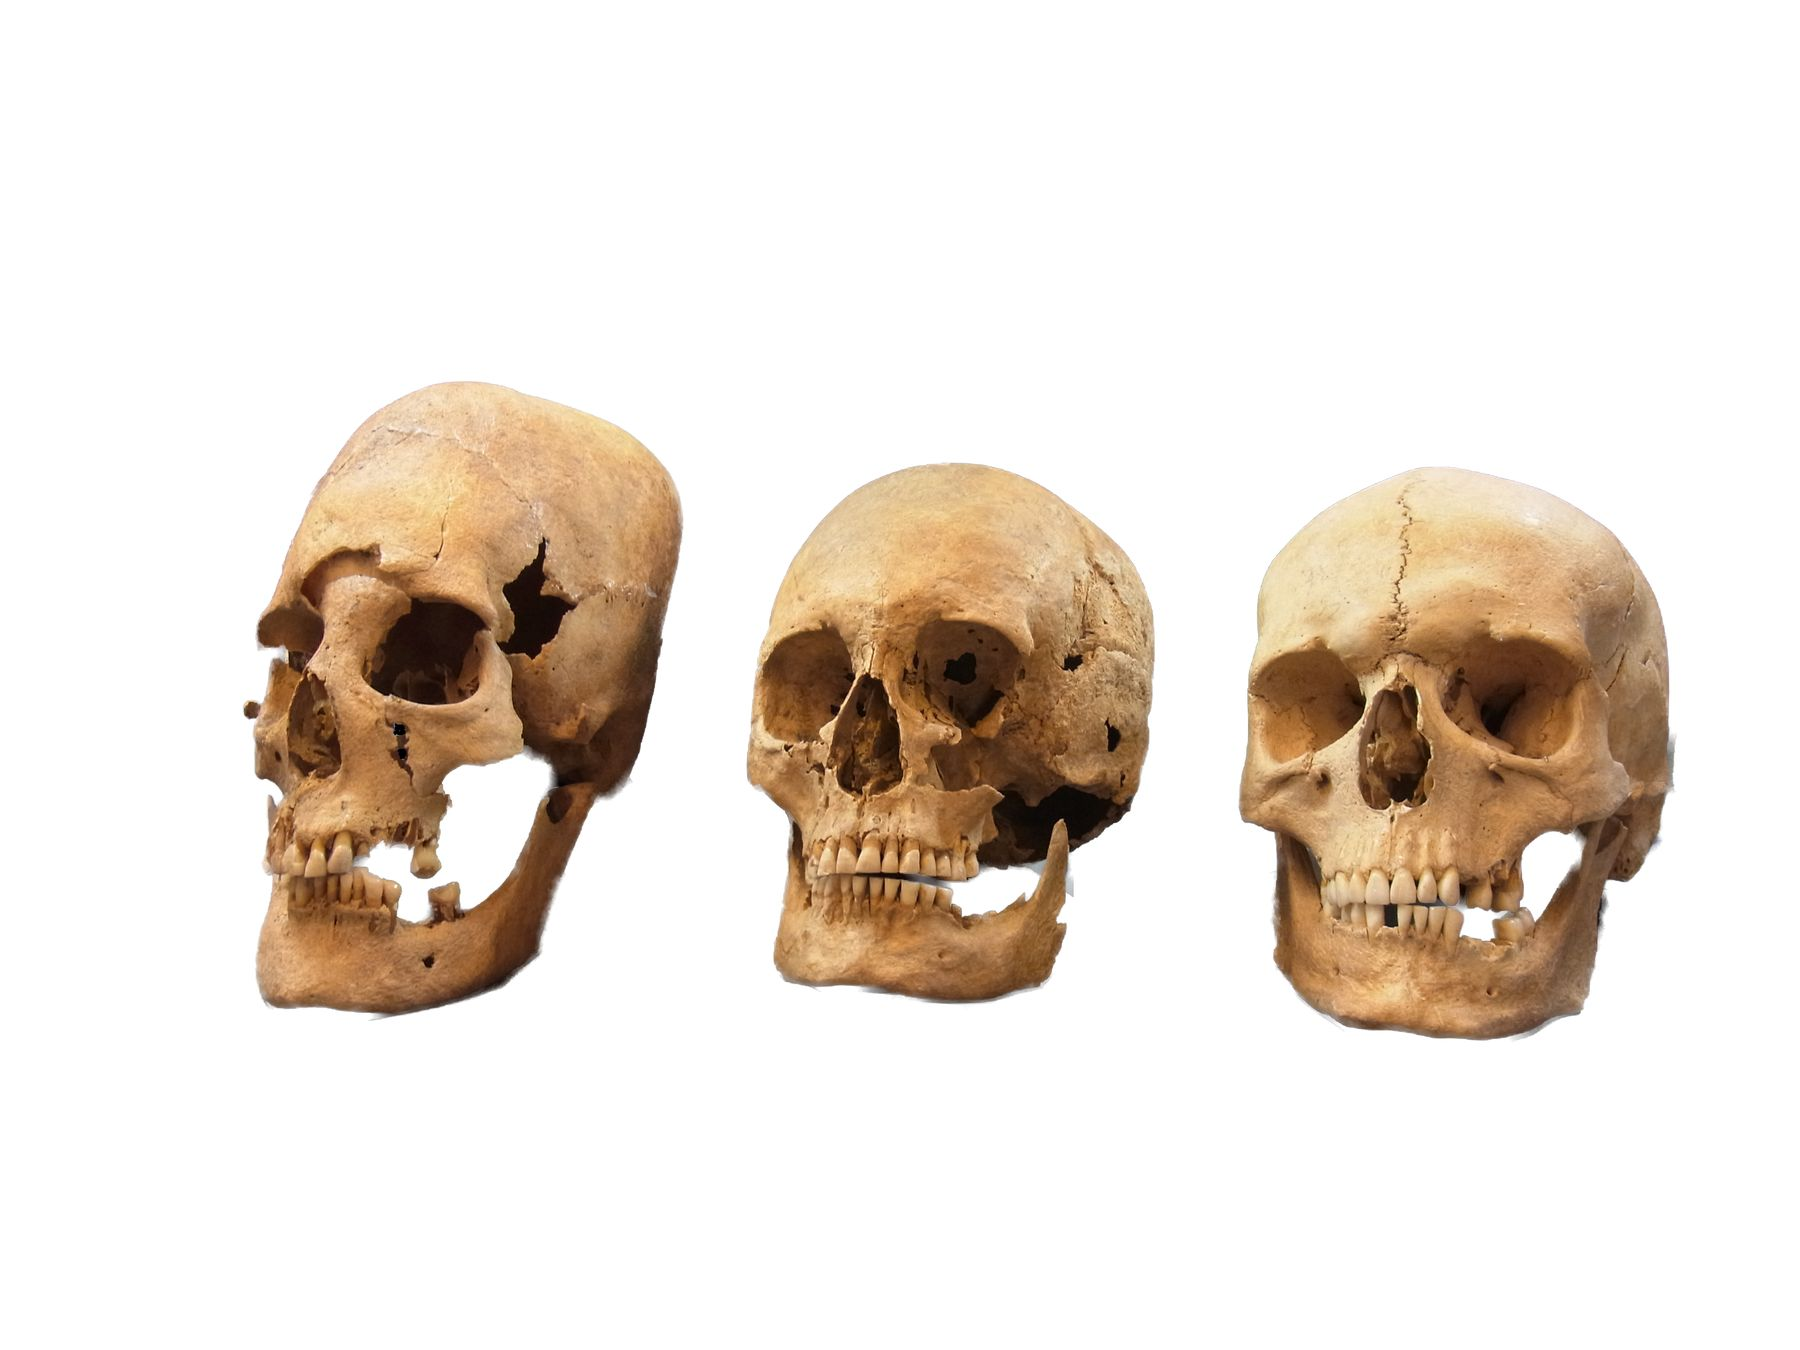 Strong, Intermediate, and Non-Deformed Skulls